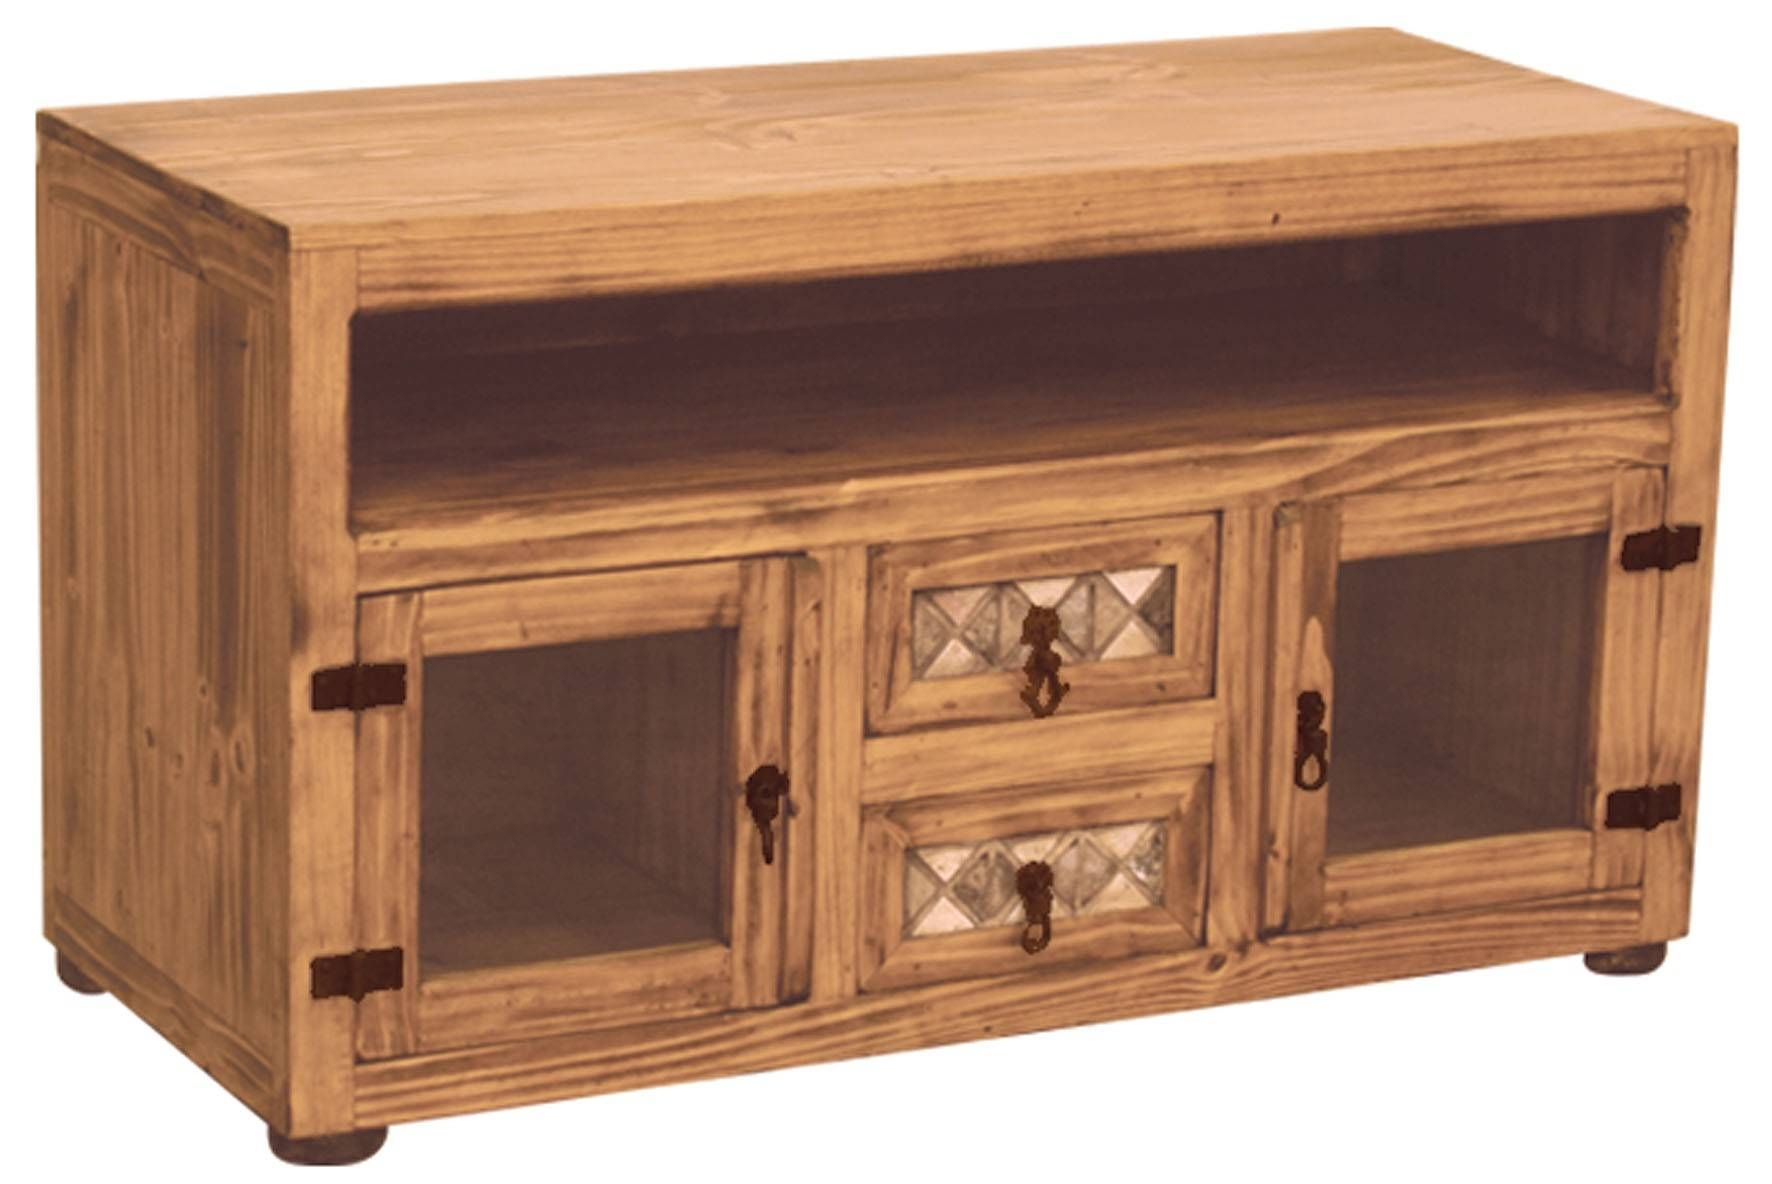 Pine Tv Stand Plans Food Storage Can Rotation Shelf Plans | Garden With Regard To Rustic Pine Tv Cabinets (View 9 of 15)